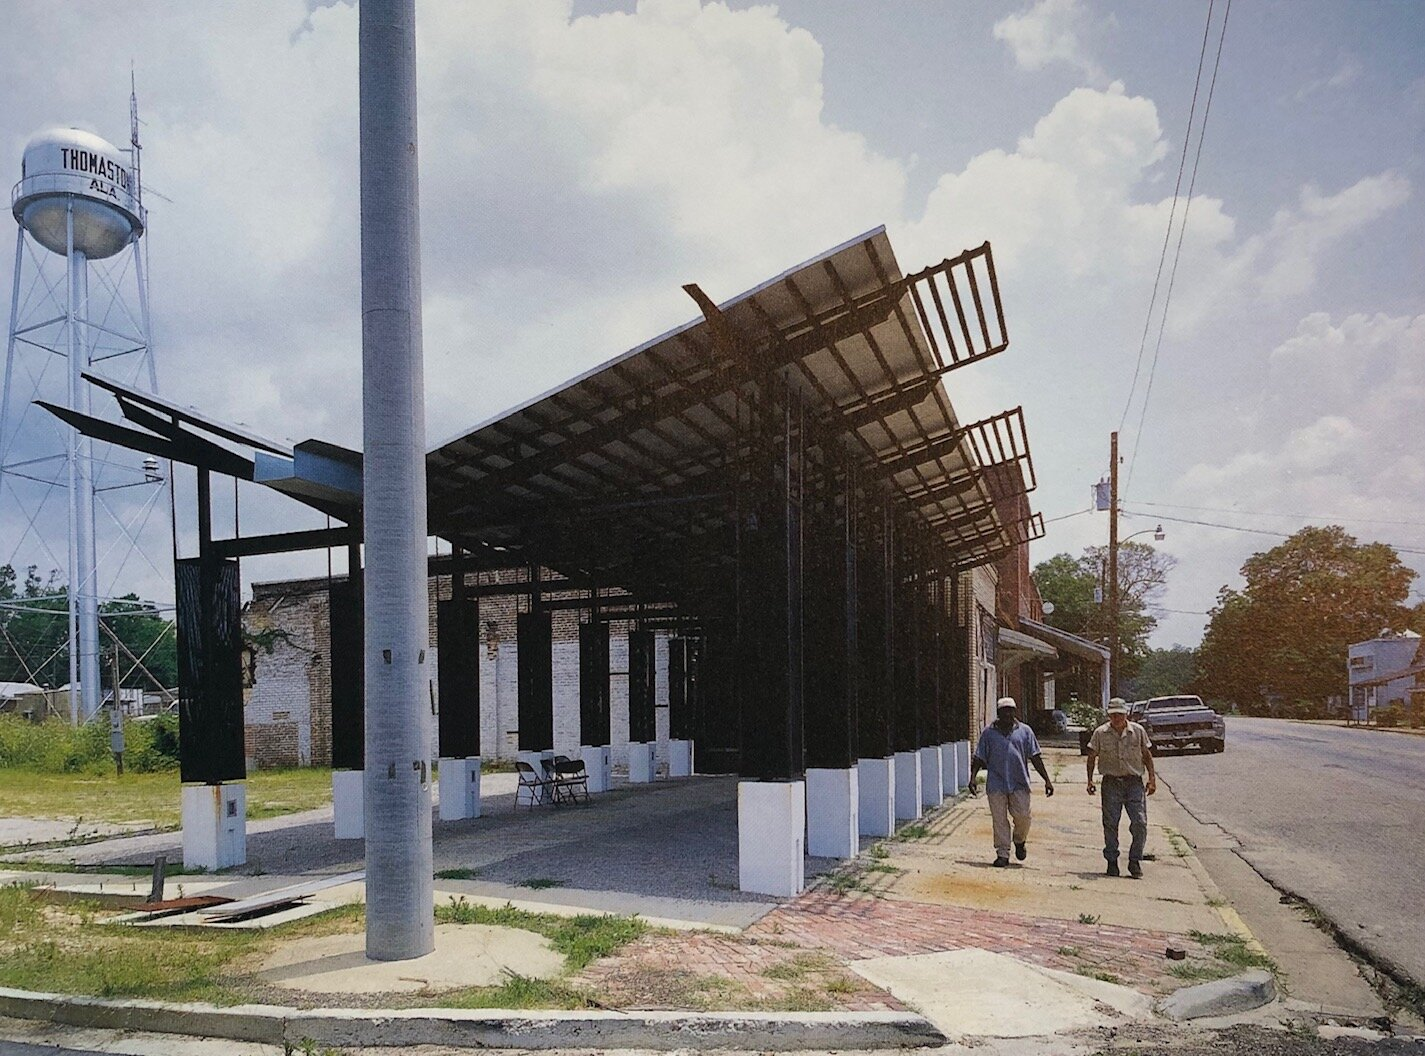 "[Thomaston Farmers Market, 2000, we're looking at you Jeff Johnston @SMHa, Photo by Timothy Hursley] This structure is the first foray into economic / town development with the initial goal of ""creating a dialogue between the Farmer's Market, the coop grocery and a local canning kitchen business."" The power is in the simplicity of the steel column grid, correctly sized stalls and lofty roof covering."